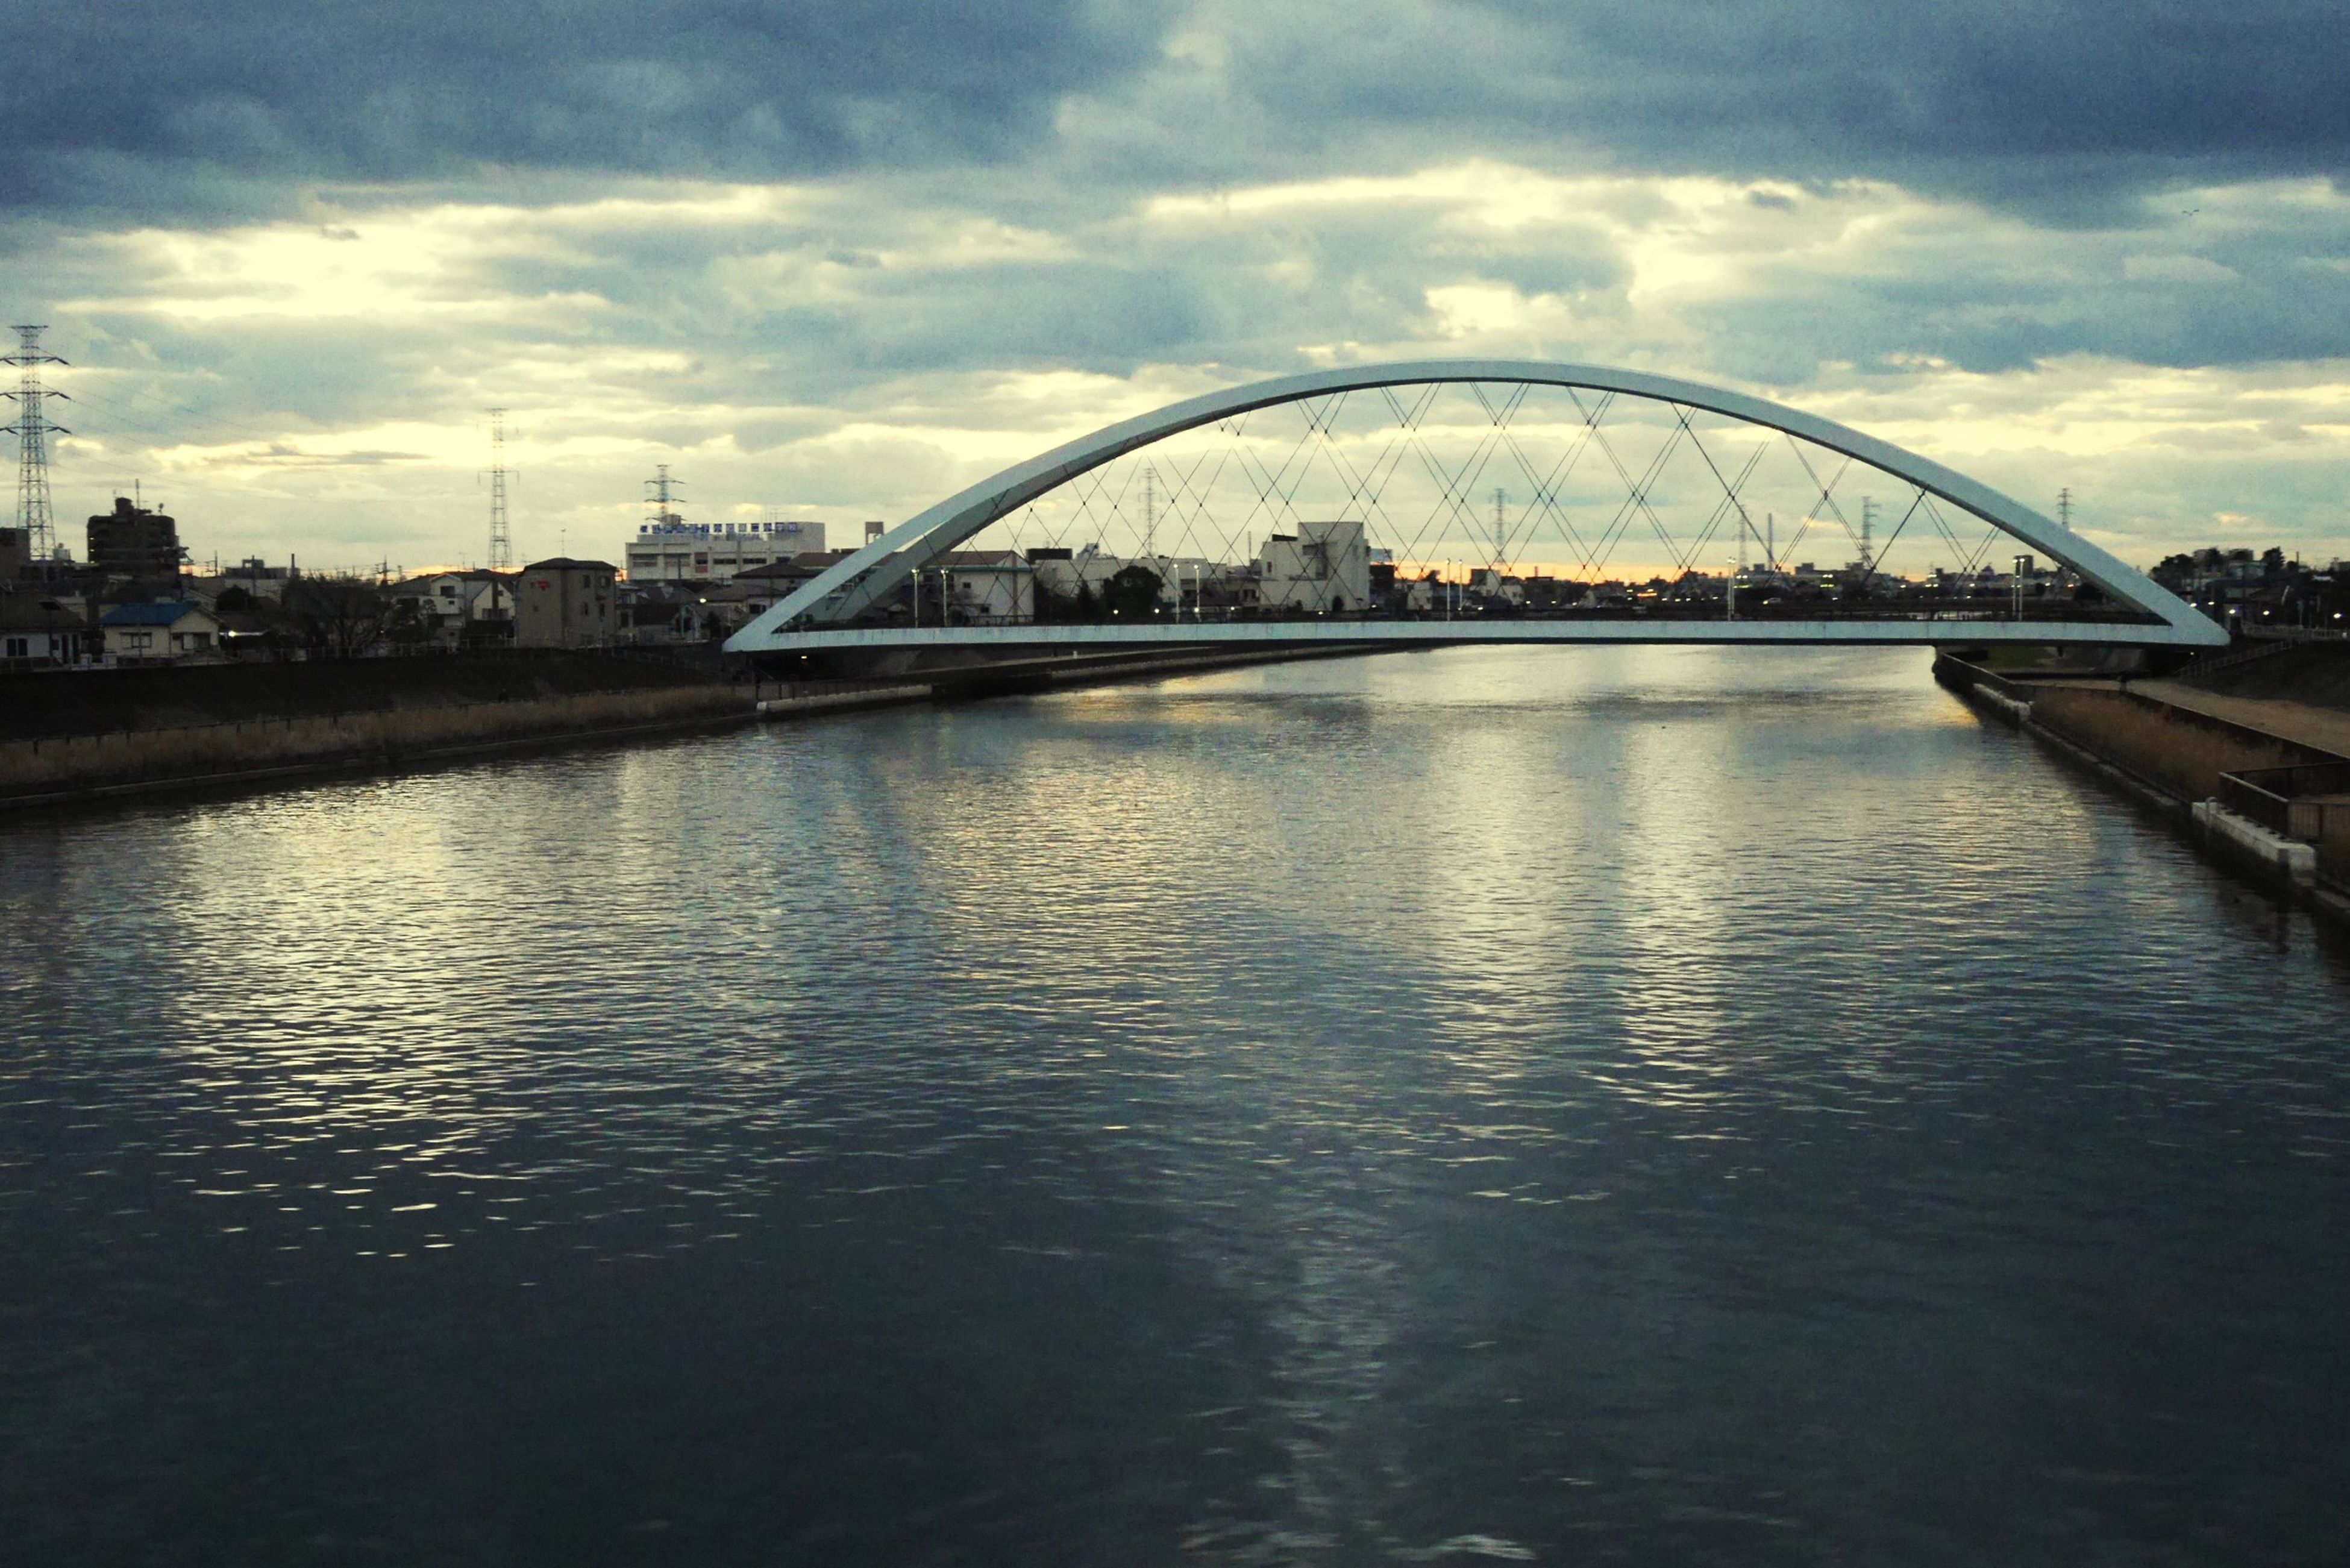 architecture, water, built structure, sky, river, bridge - man made structure, connection, waterfront, cloud - sky, building exterior, city, bridge, transportation, engineering, cloud, reflection, arch bridge, cloudy, rippled, arch